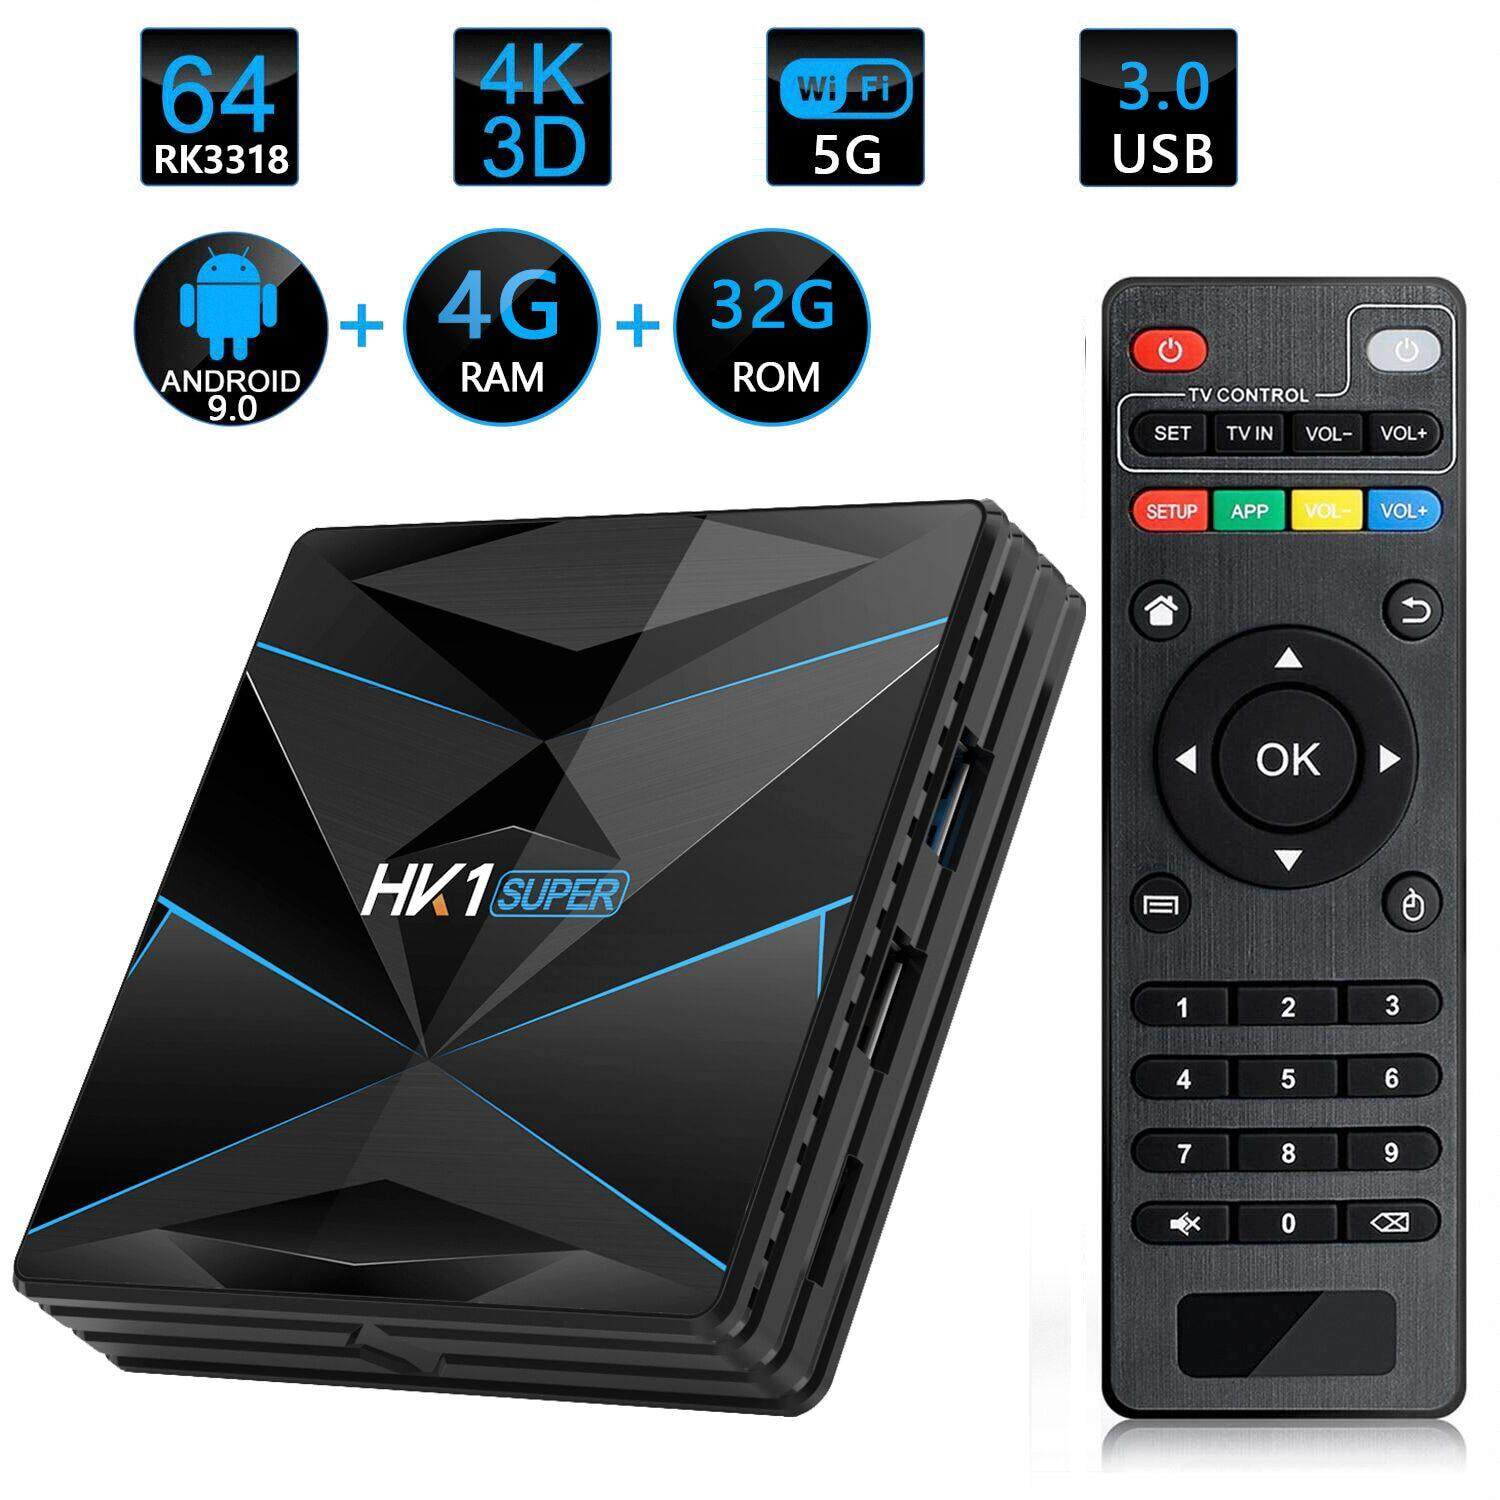 ยี่ห้อไหนดี  แพร่  HK1 Super  Android 9 0 Smart TV BOX Google asistente RK3318 4K 3D Ultra HD 4G 64G TV wifi Play Store Apps gratis rápido Set top Box TV BOX